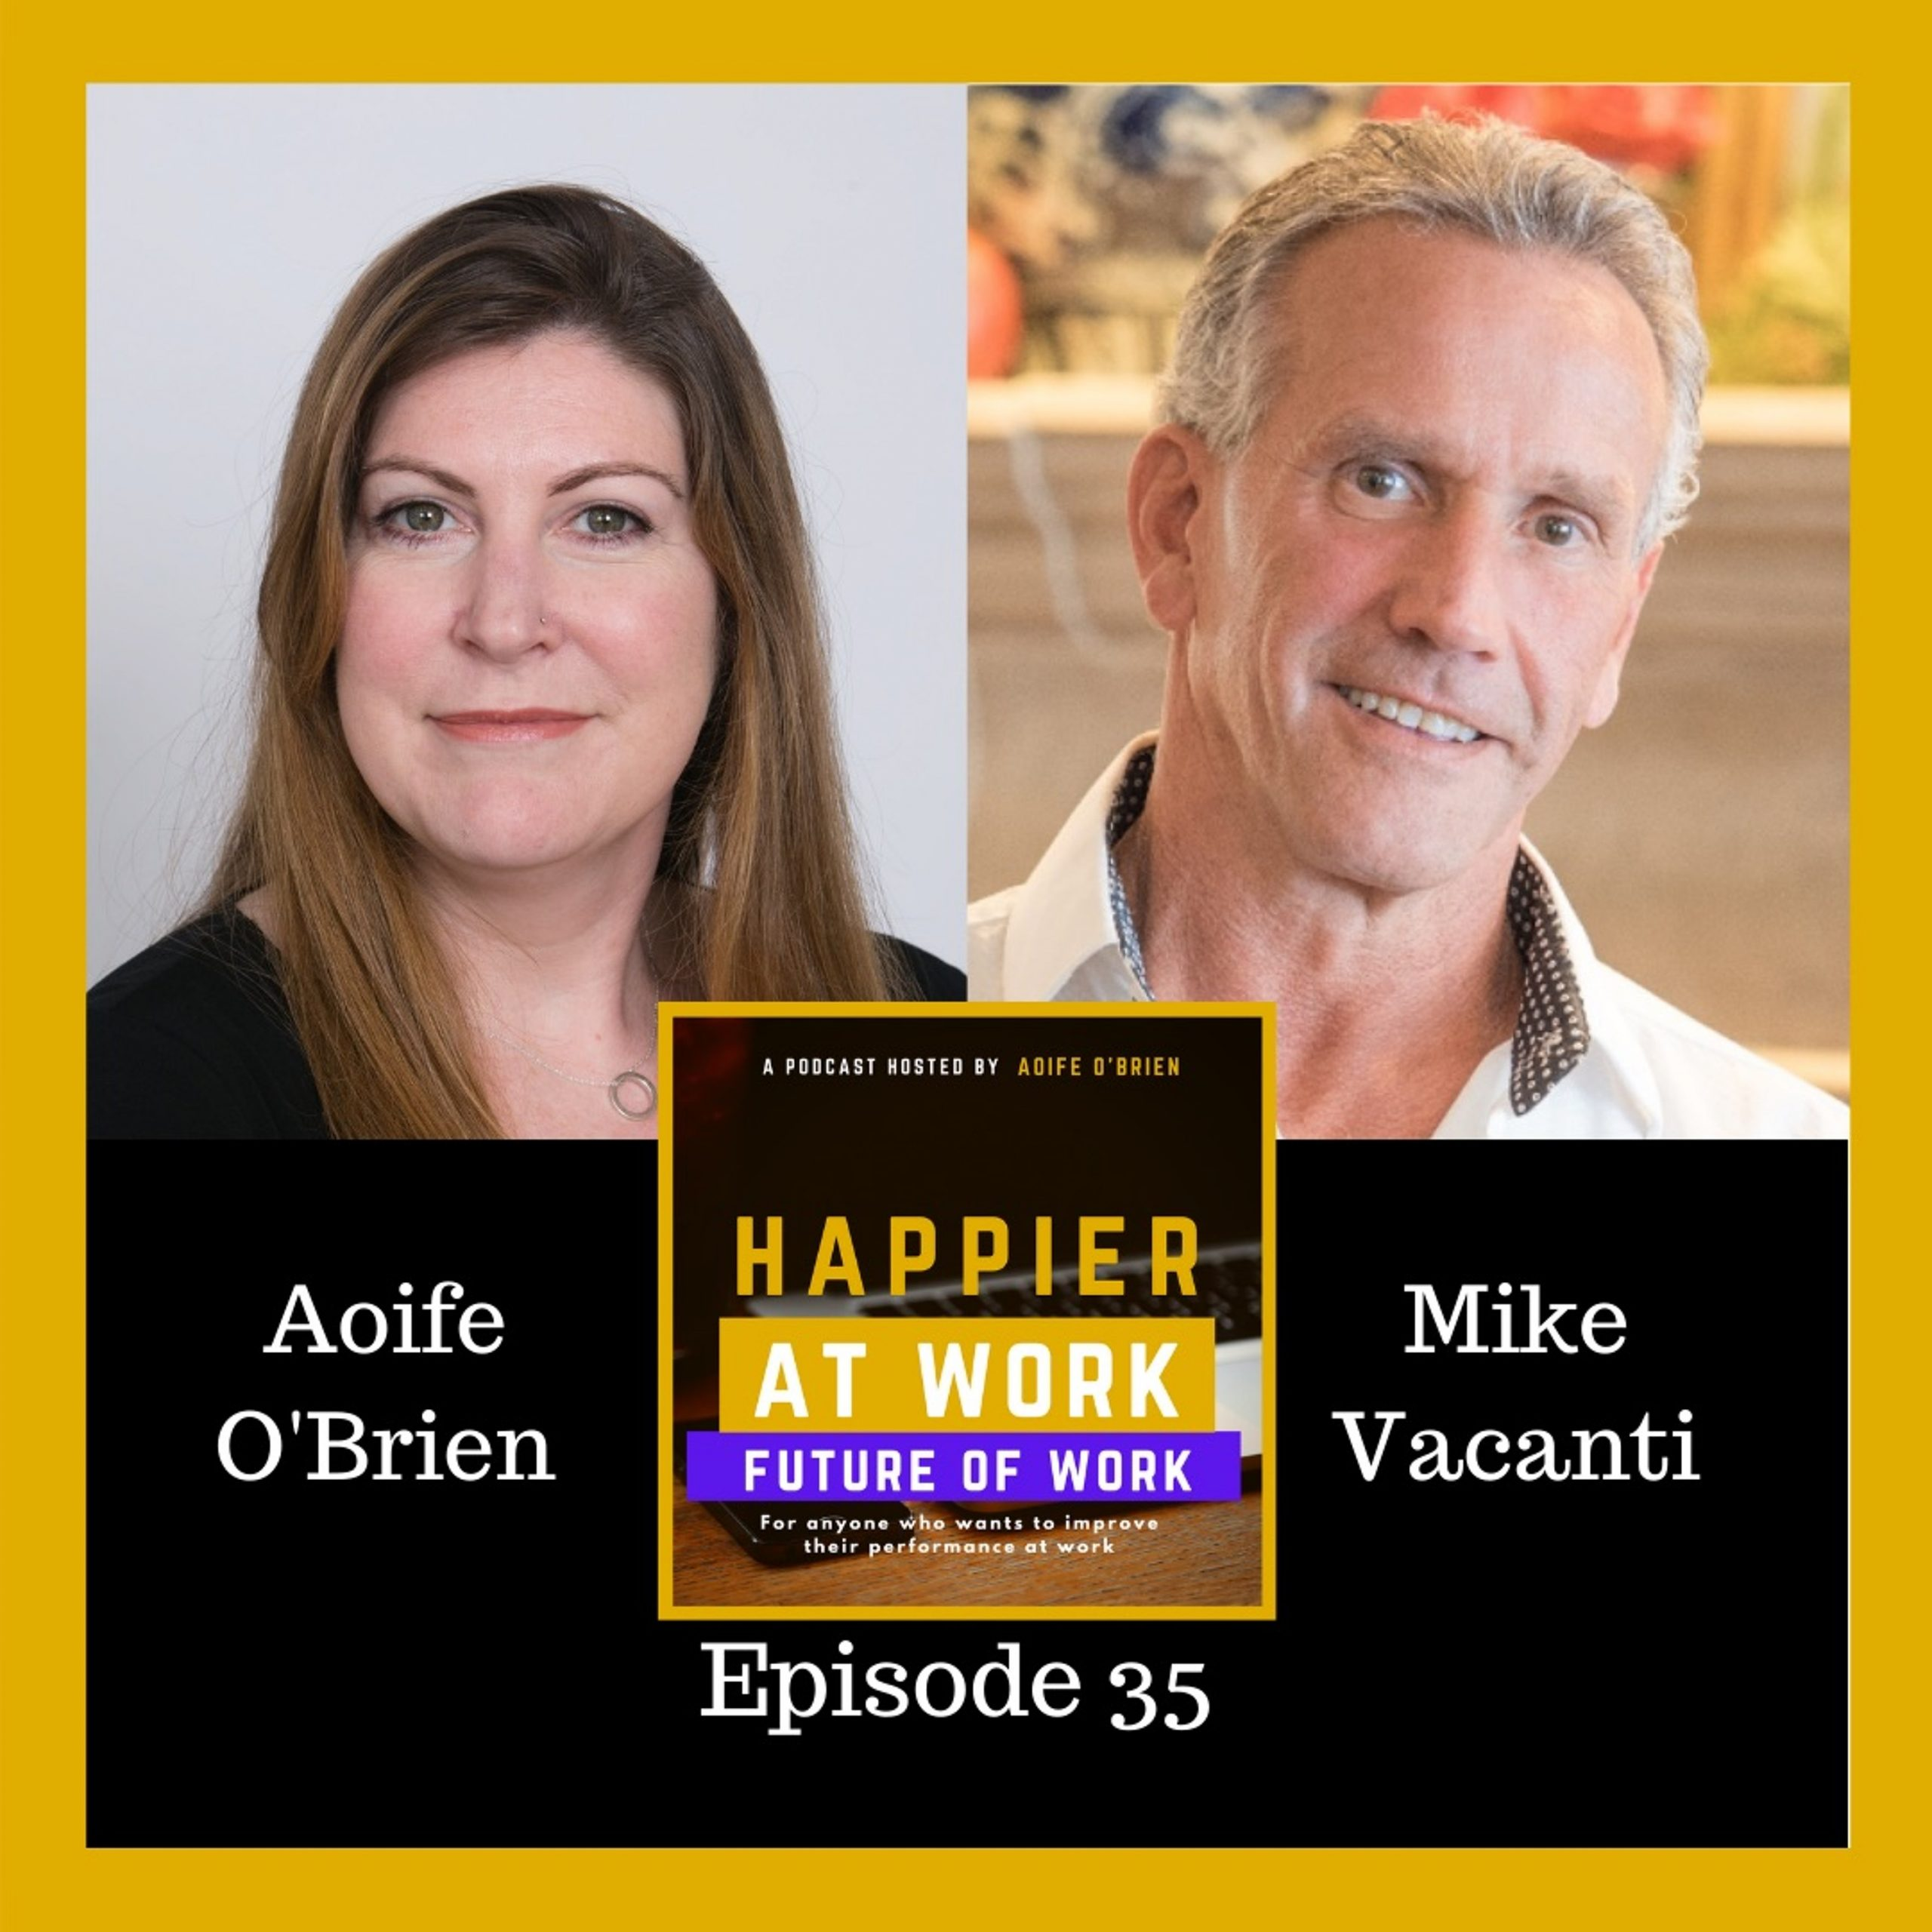 Happier at work podcast Mark Vacanti